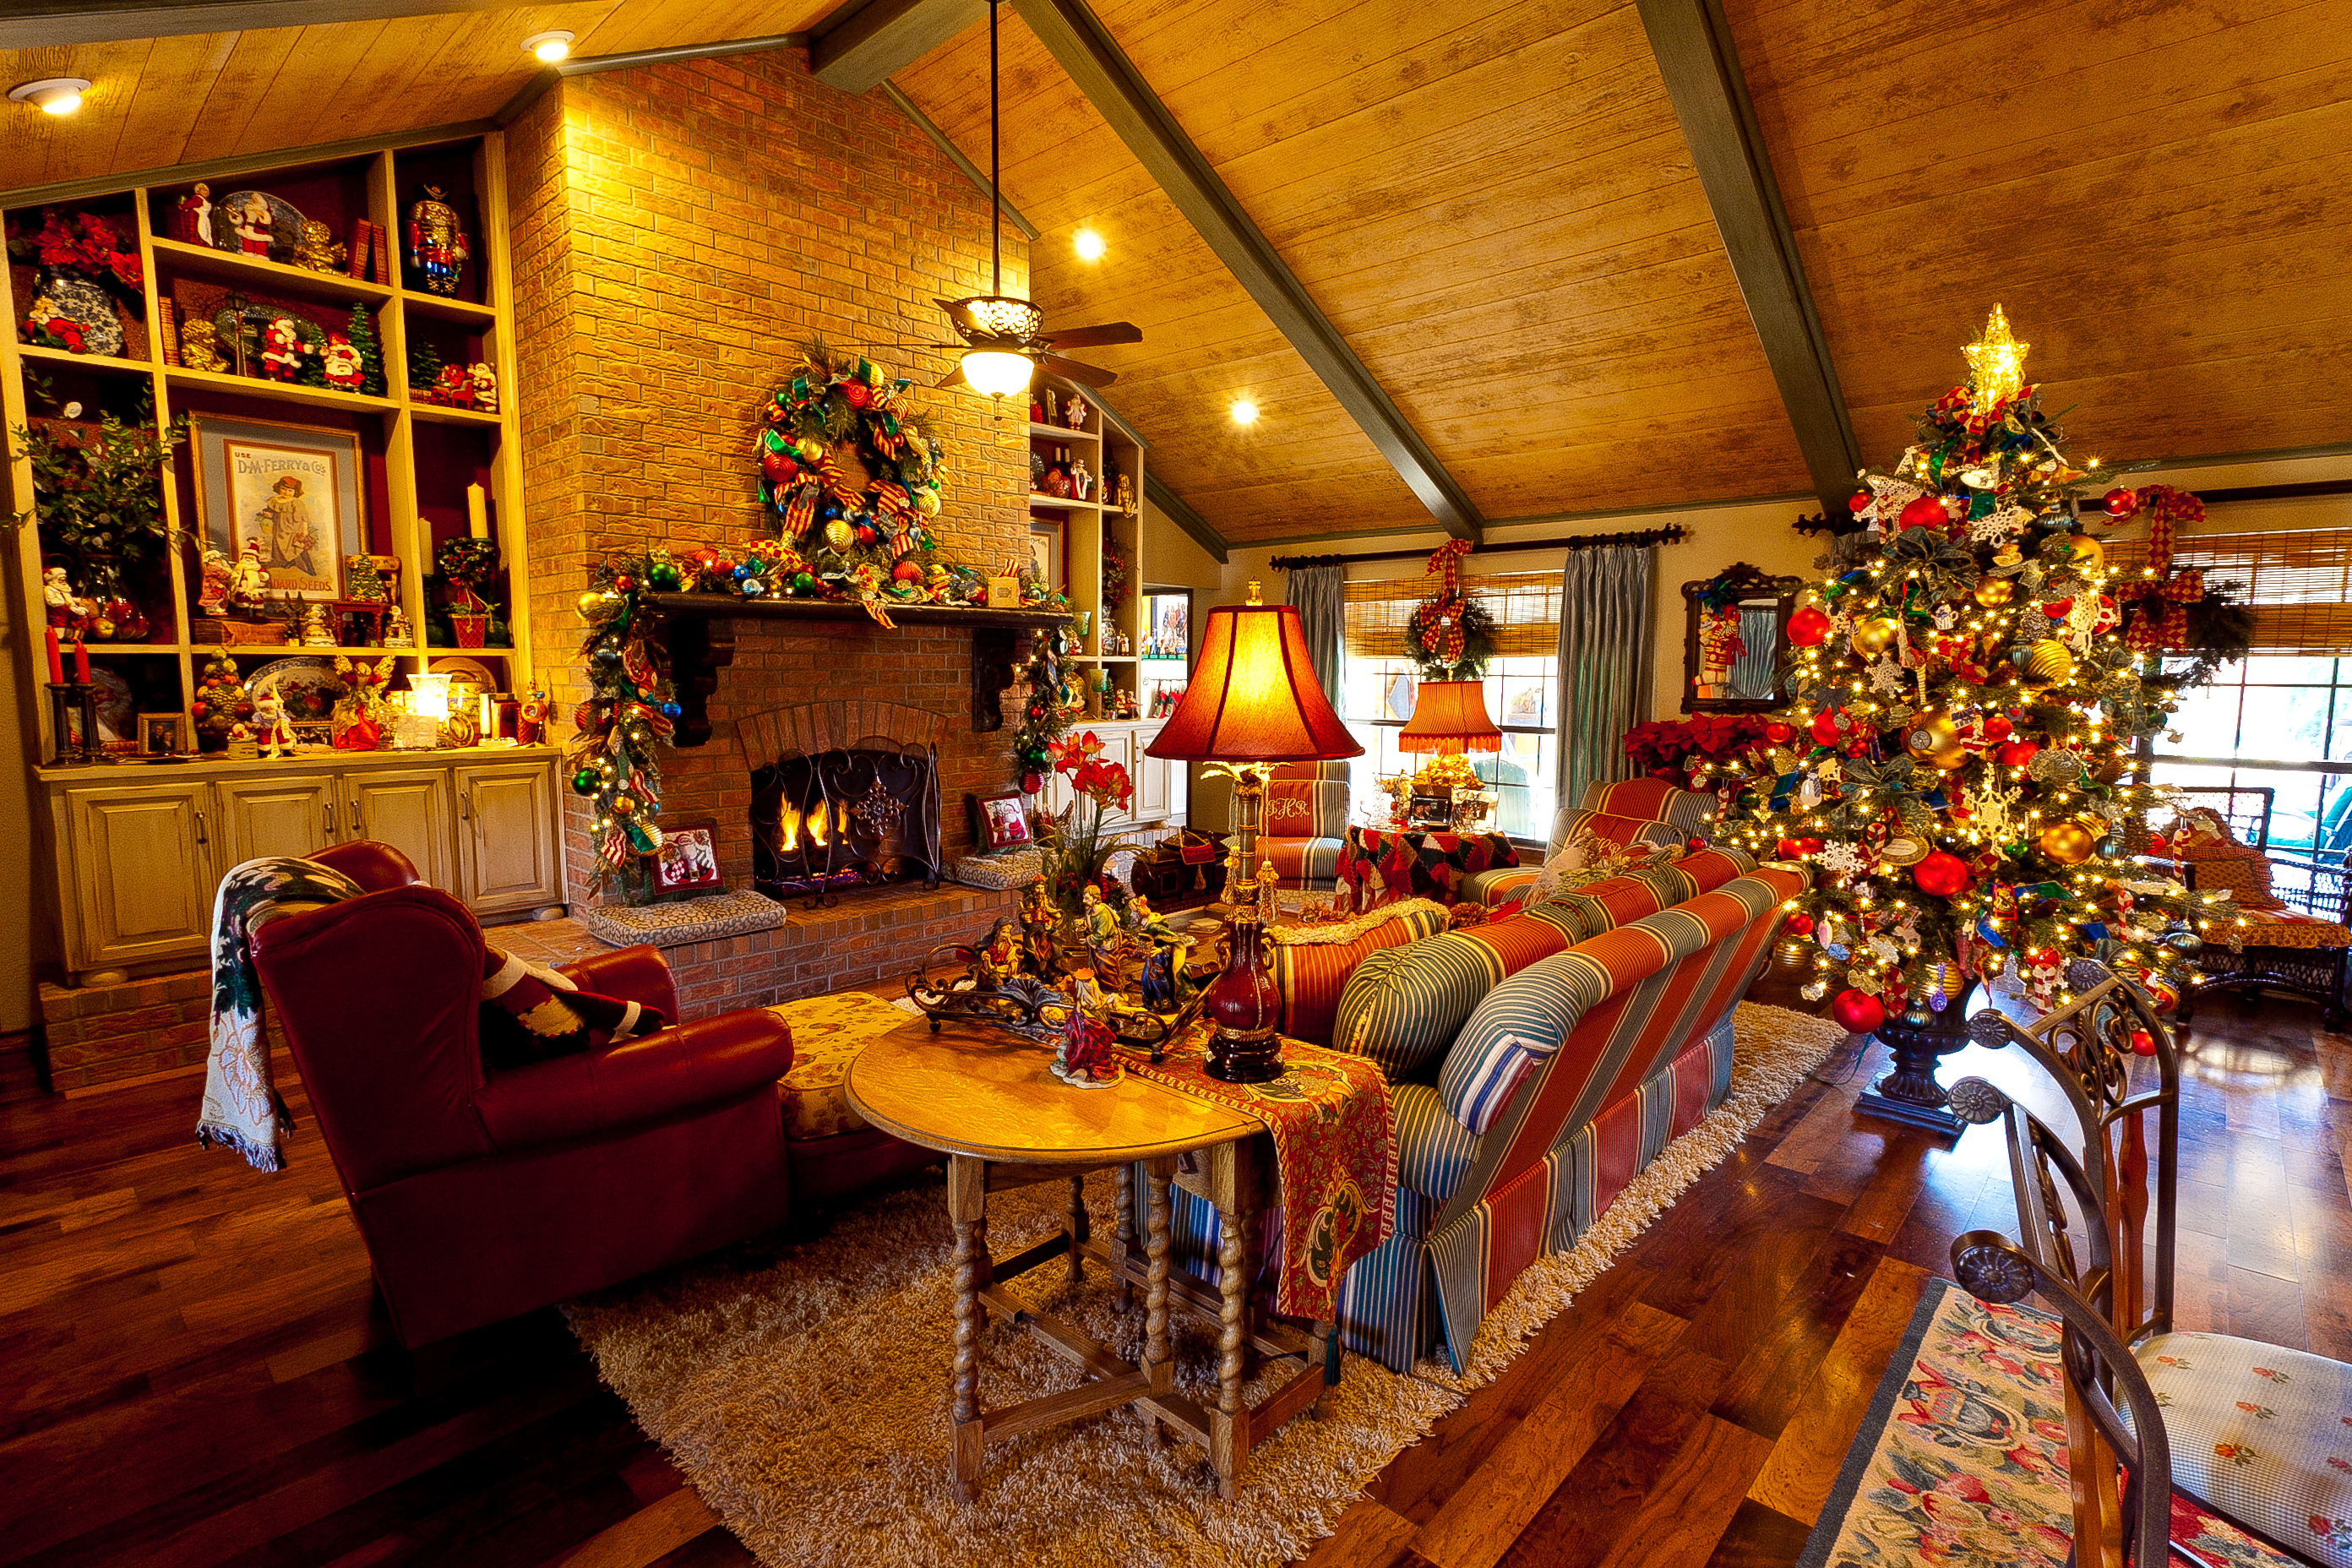 interior-inspiration-classic-country-french-home-christmas-living-room-decor-with-wooden-sloped-plafond-over-classic-living-sets-as-well-as-old-fireplace-in-attic-room-ideas-30-dazzling-christmas-liv